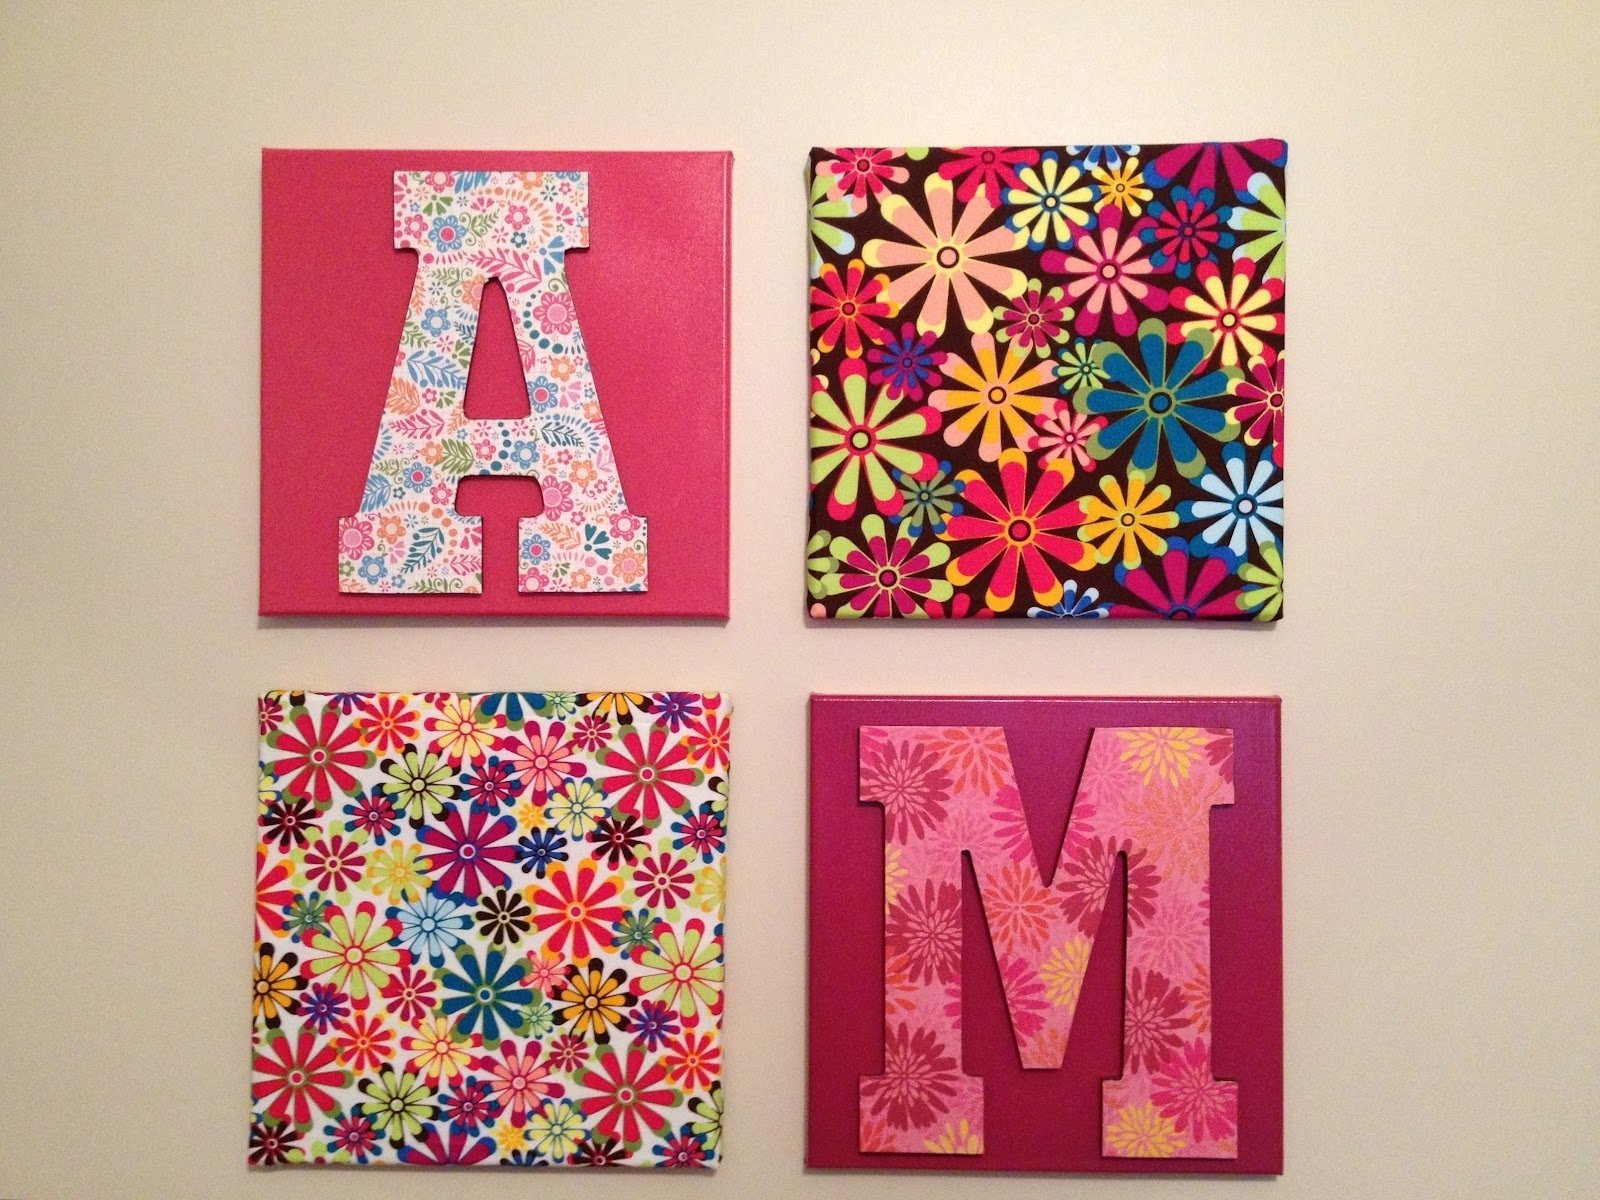 Craft Ideas For Girls   Living Unbound: Diy Easy Wall Hanging With Most Popular Homemade Wall Art With Fabric (View 5 of 15)